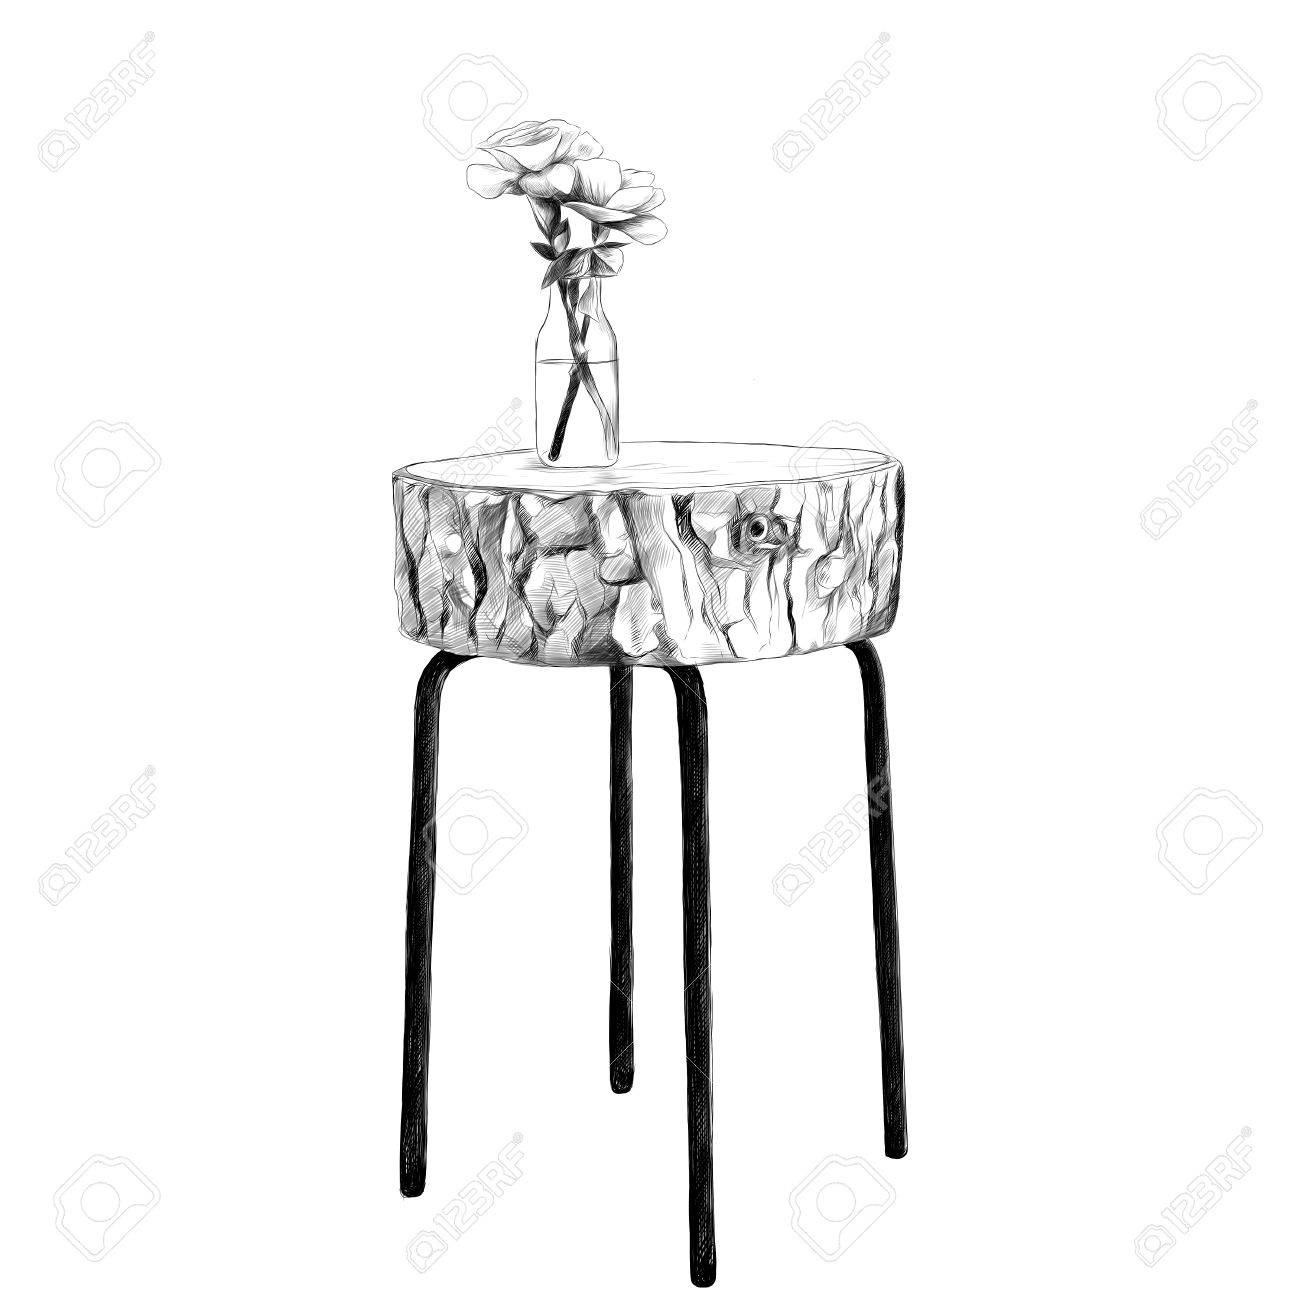 Decorative table with top made of logs with a vase and flowers decorative table with top made of logs with a vase and flowers sketch vector graphics black reviewsmspy